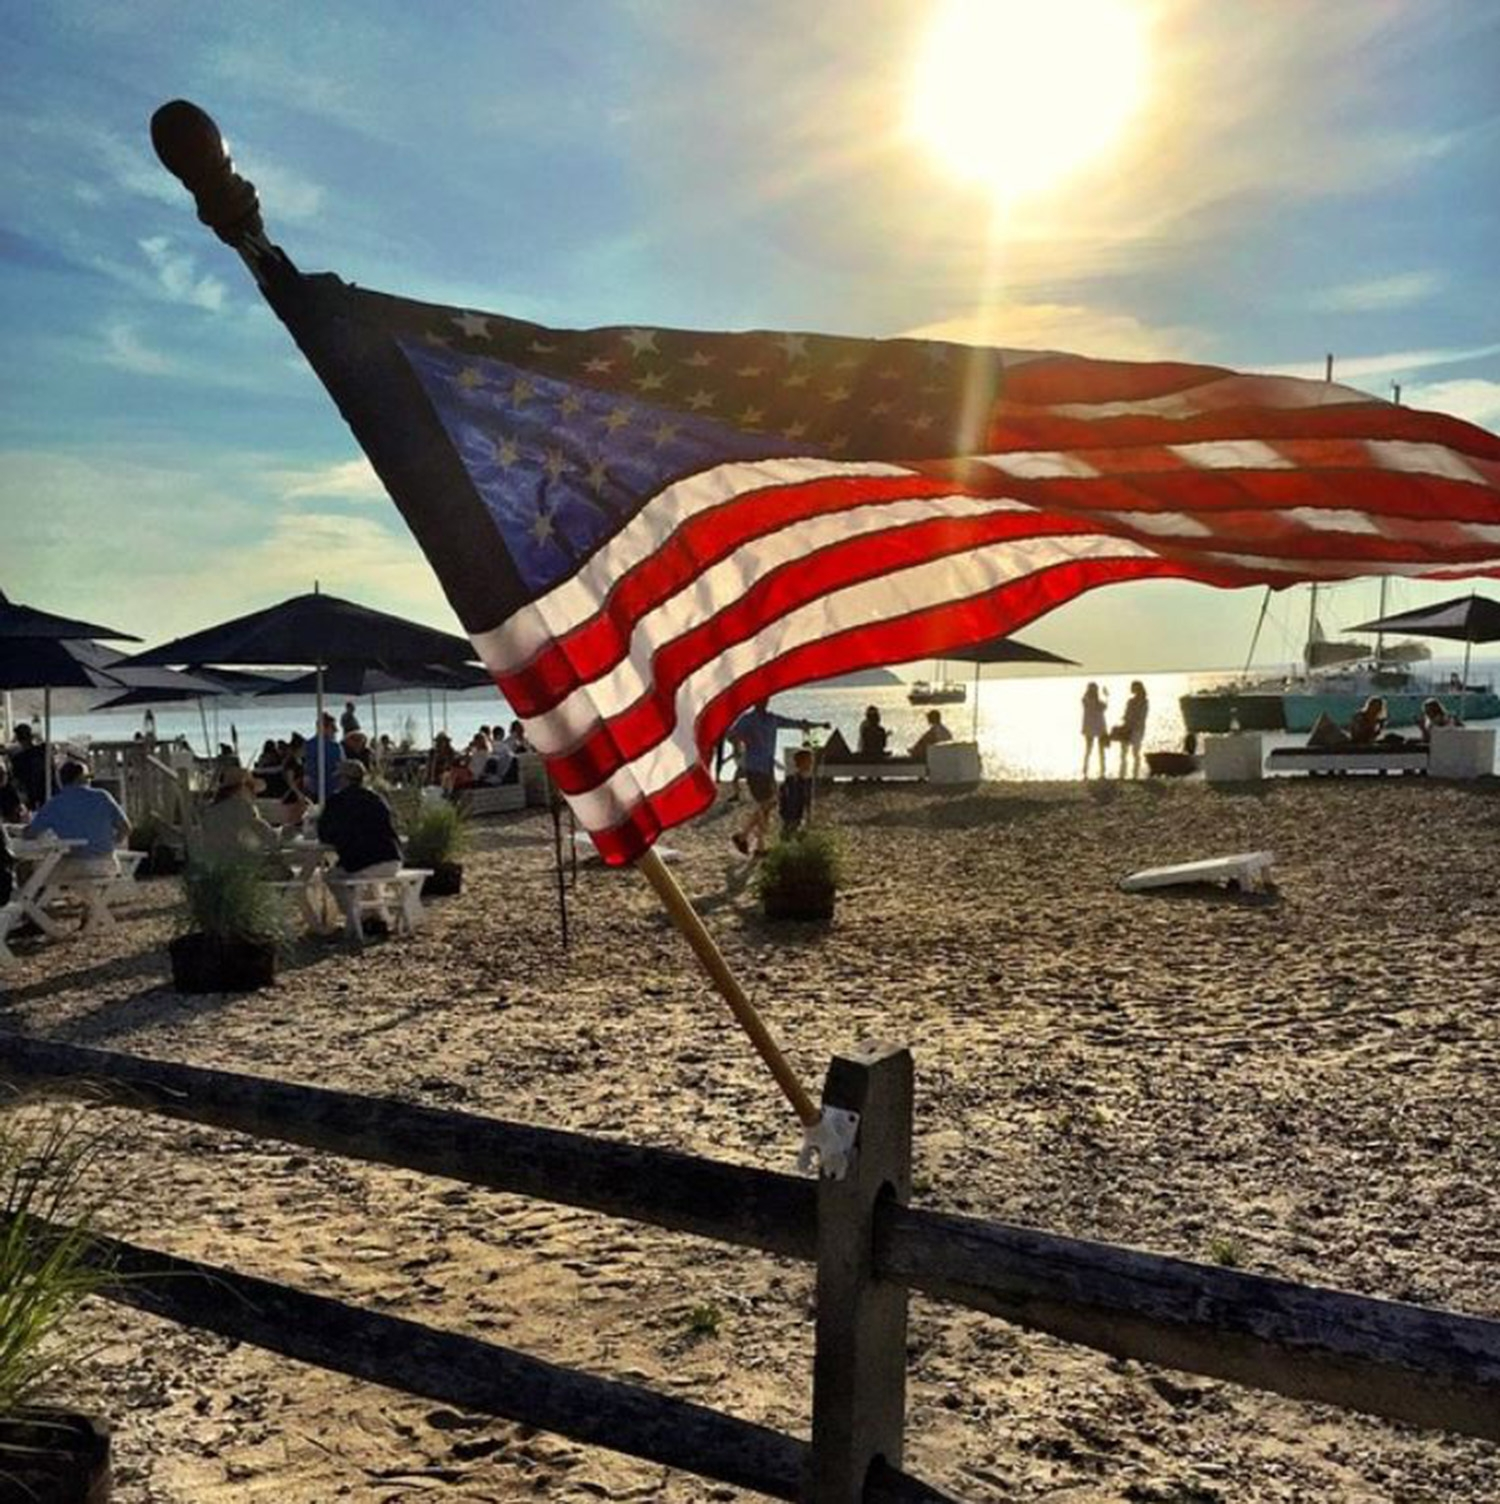 The American flag flying in the wind at a sunny day on the beach